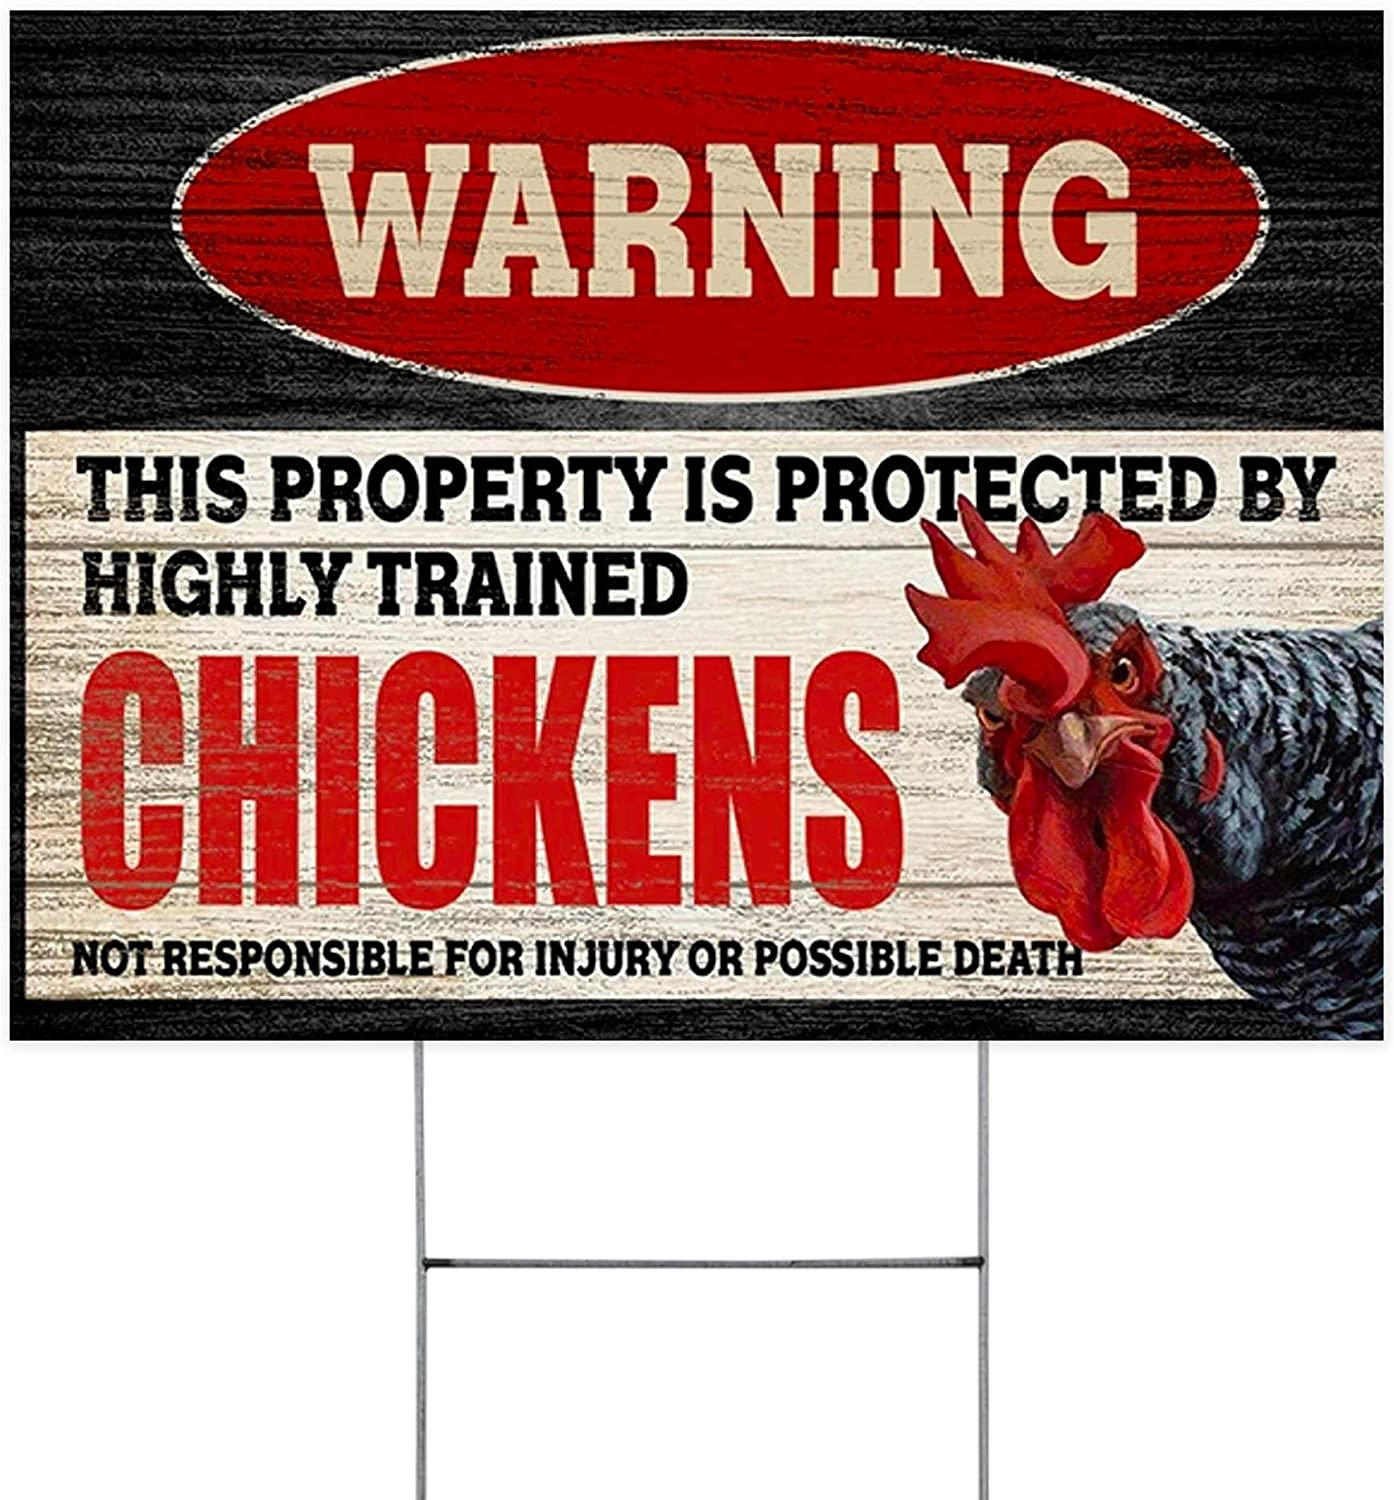 This Property is Protected by Beauty products Philadelphia Mall Sign Trained Yard Highly Chickens